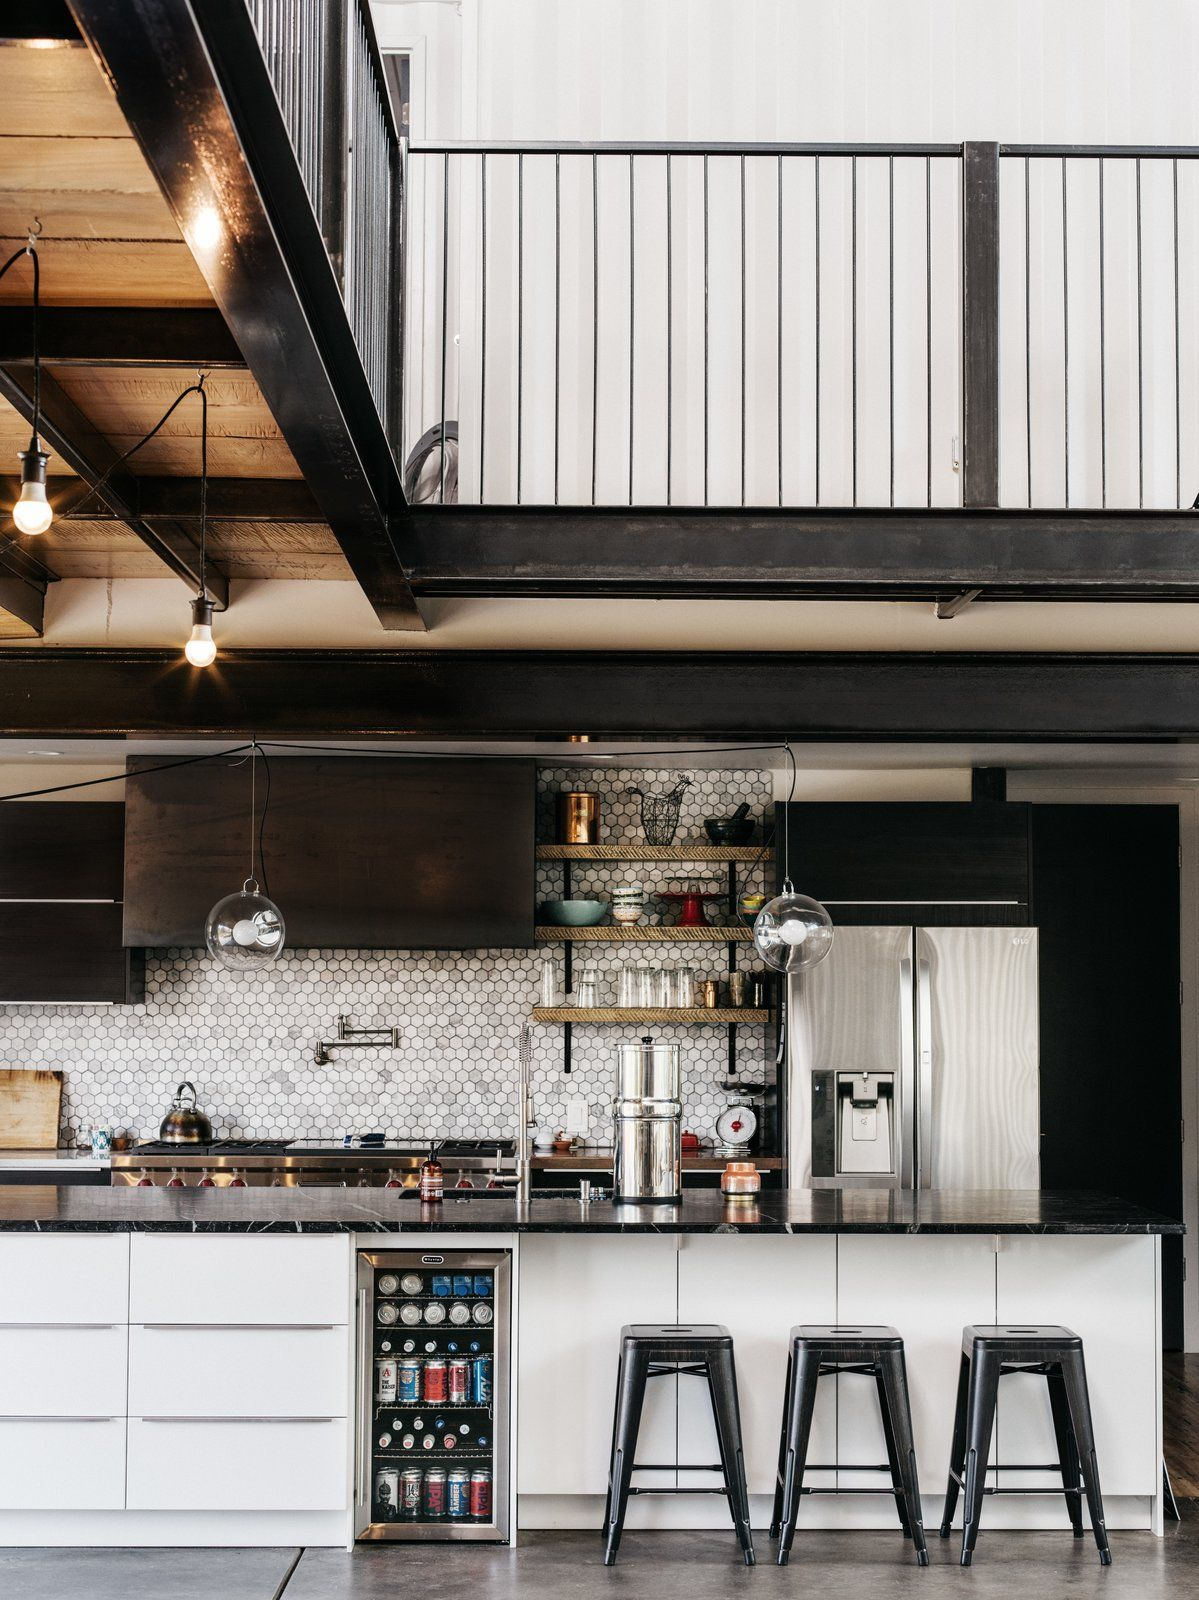 The open kitchen includes a large island with lots of built-in storage